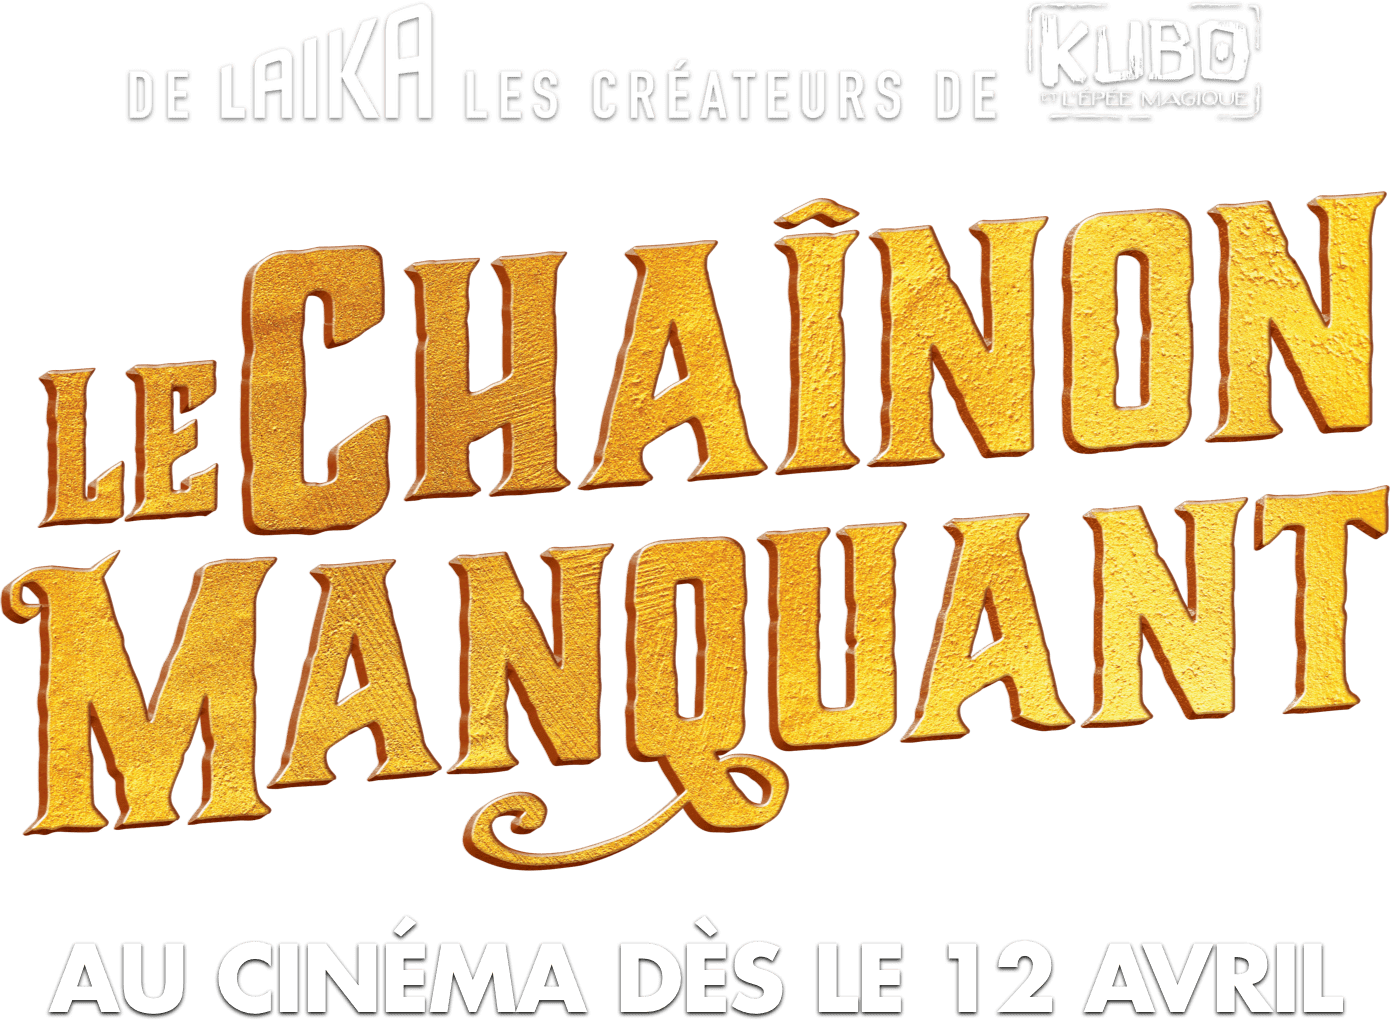 Le chaînon manquant: Synopsis | Elevation Pictures